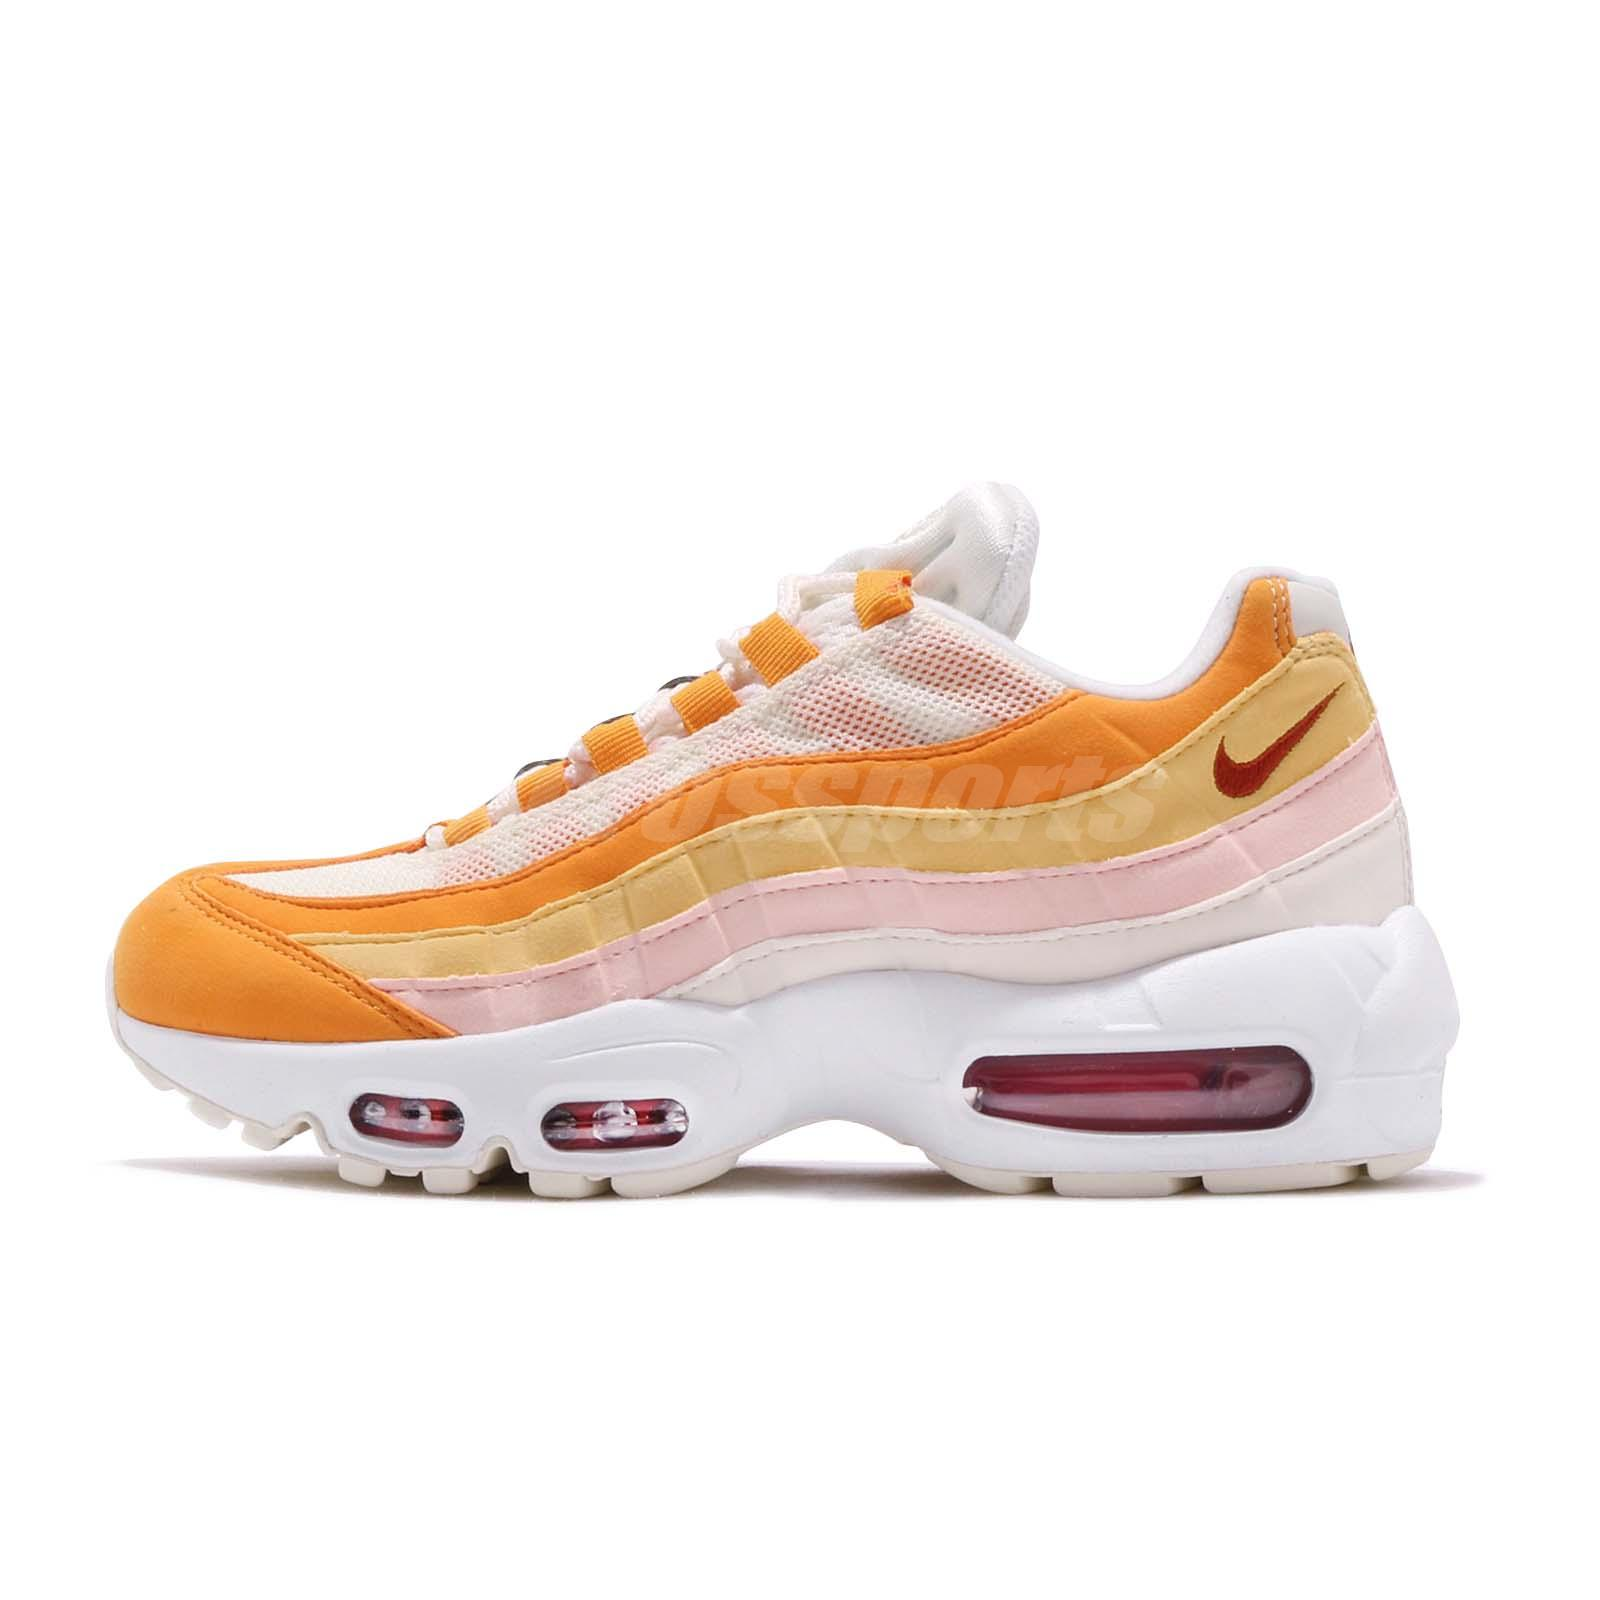 wholesale dealer 63dd5 40dd4 Nike Wmns Air Max 95 Bacon Orange Ivory Pink Womens Running Shoes 307960-114